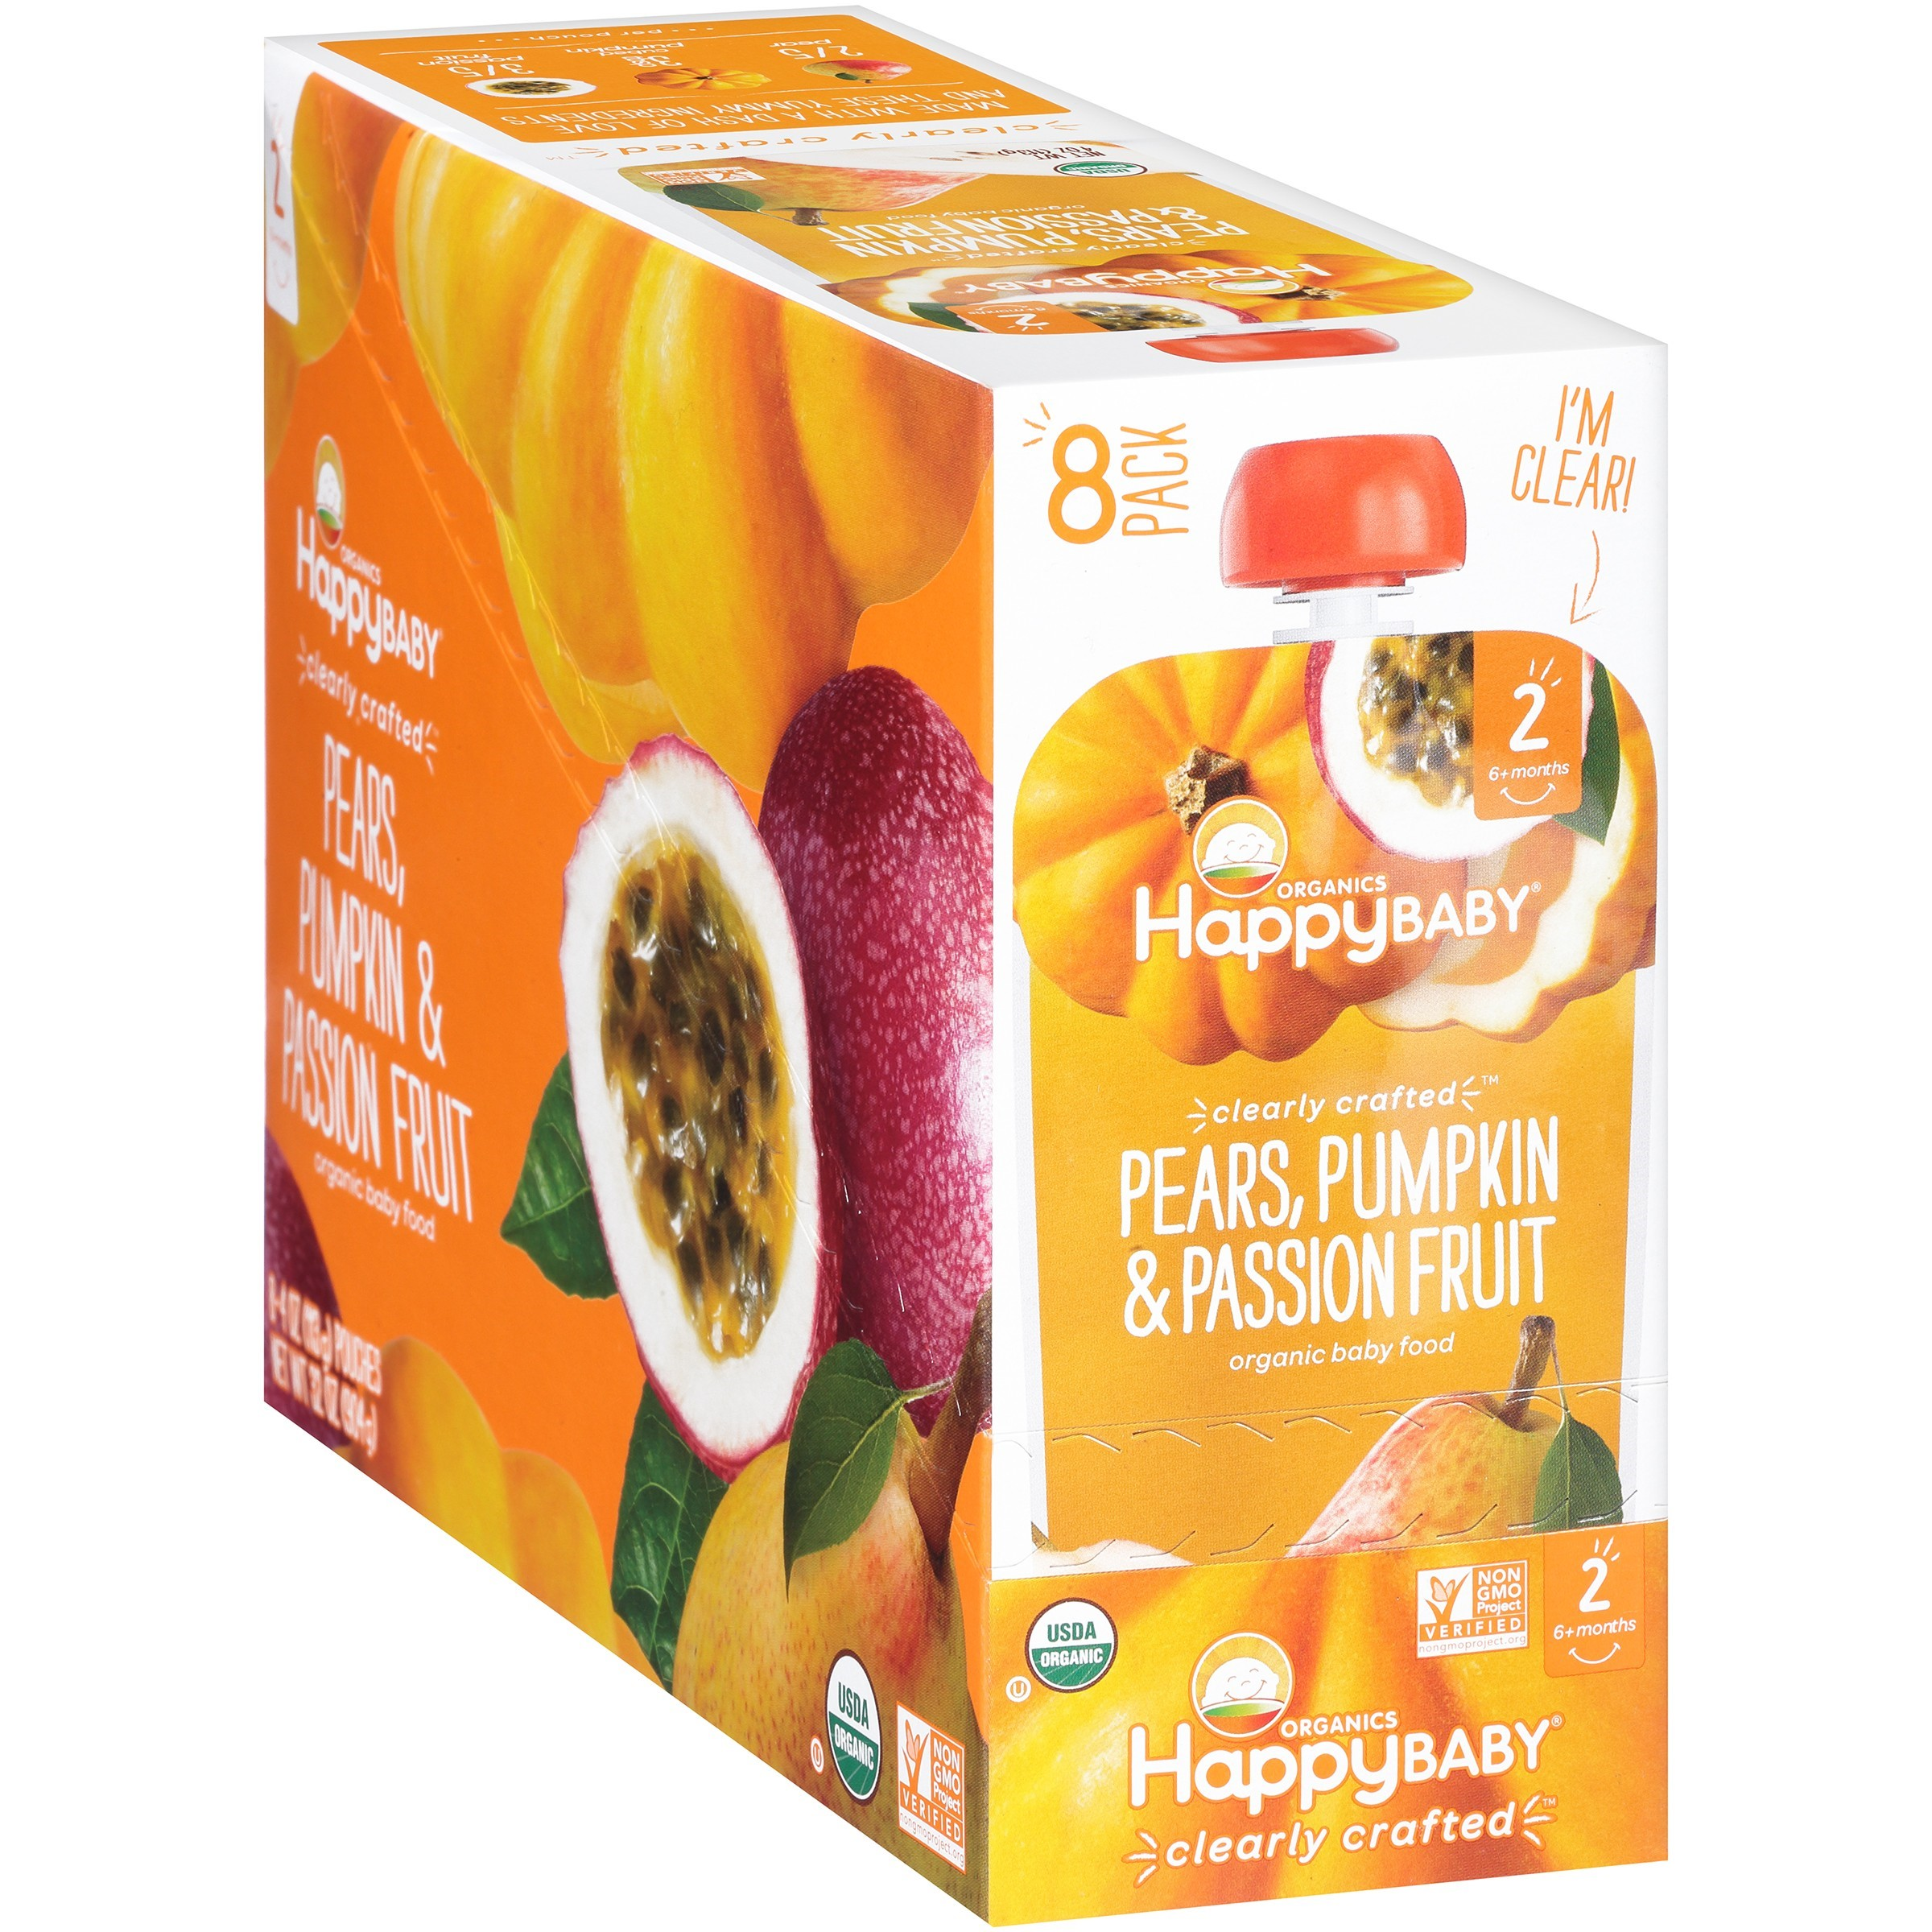 Happy Baby® Organics Pears, Pumpkin & Passion Fruit 4 oz. Pouches, 8 count